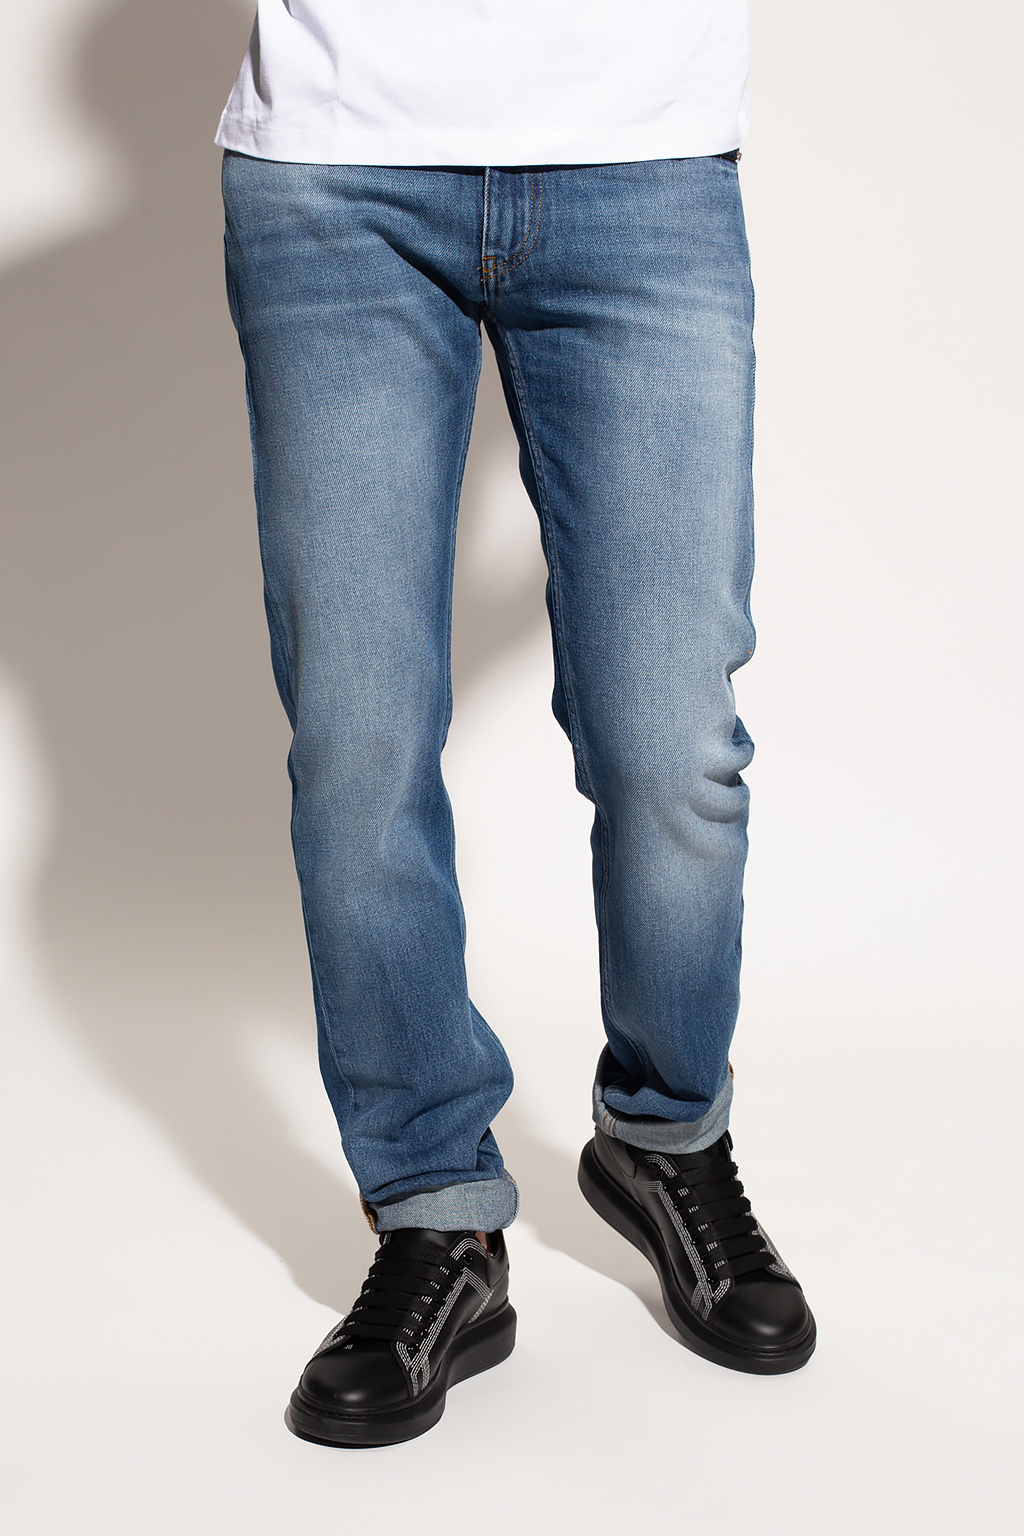 Versace Jeans with logo